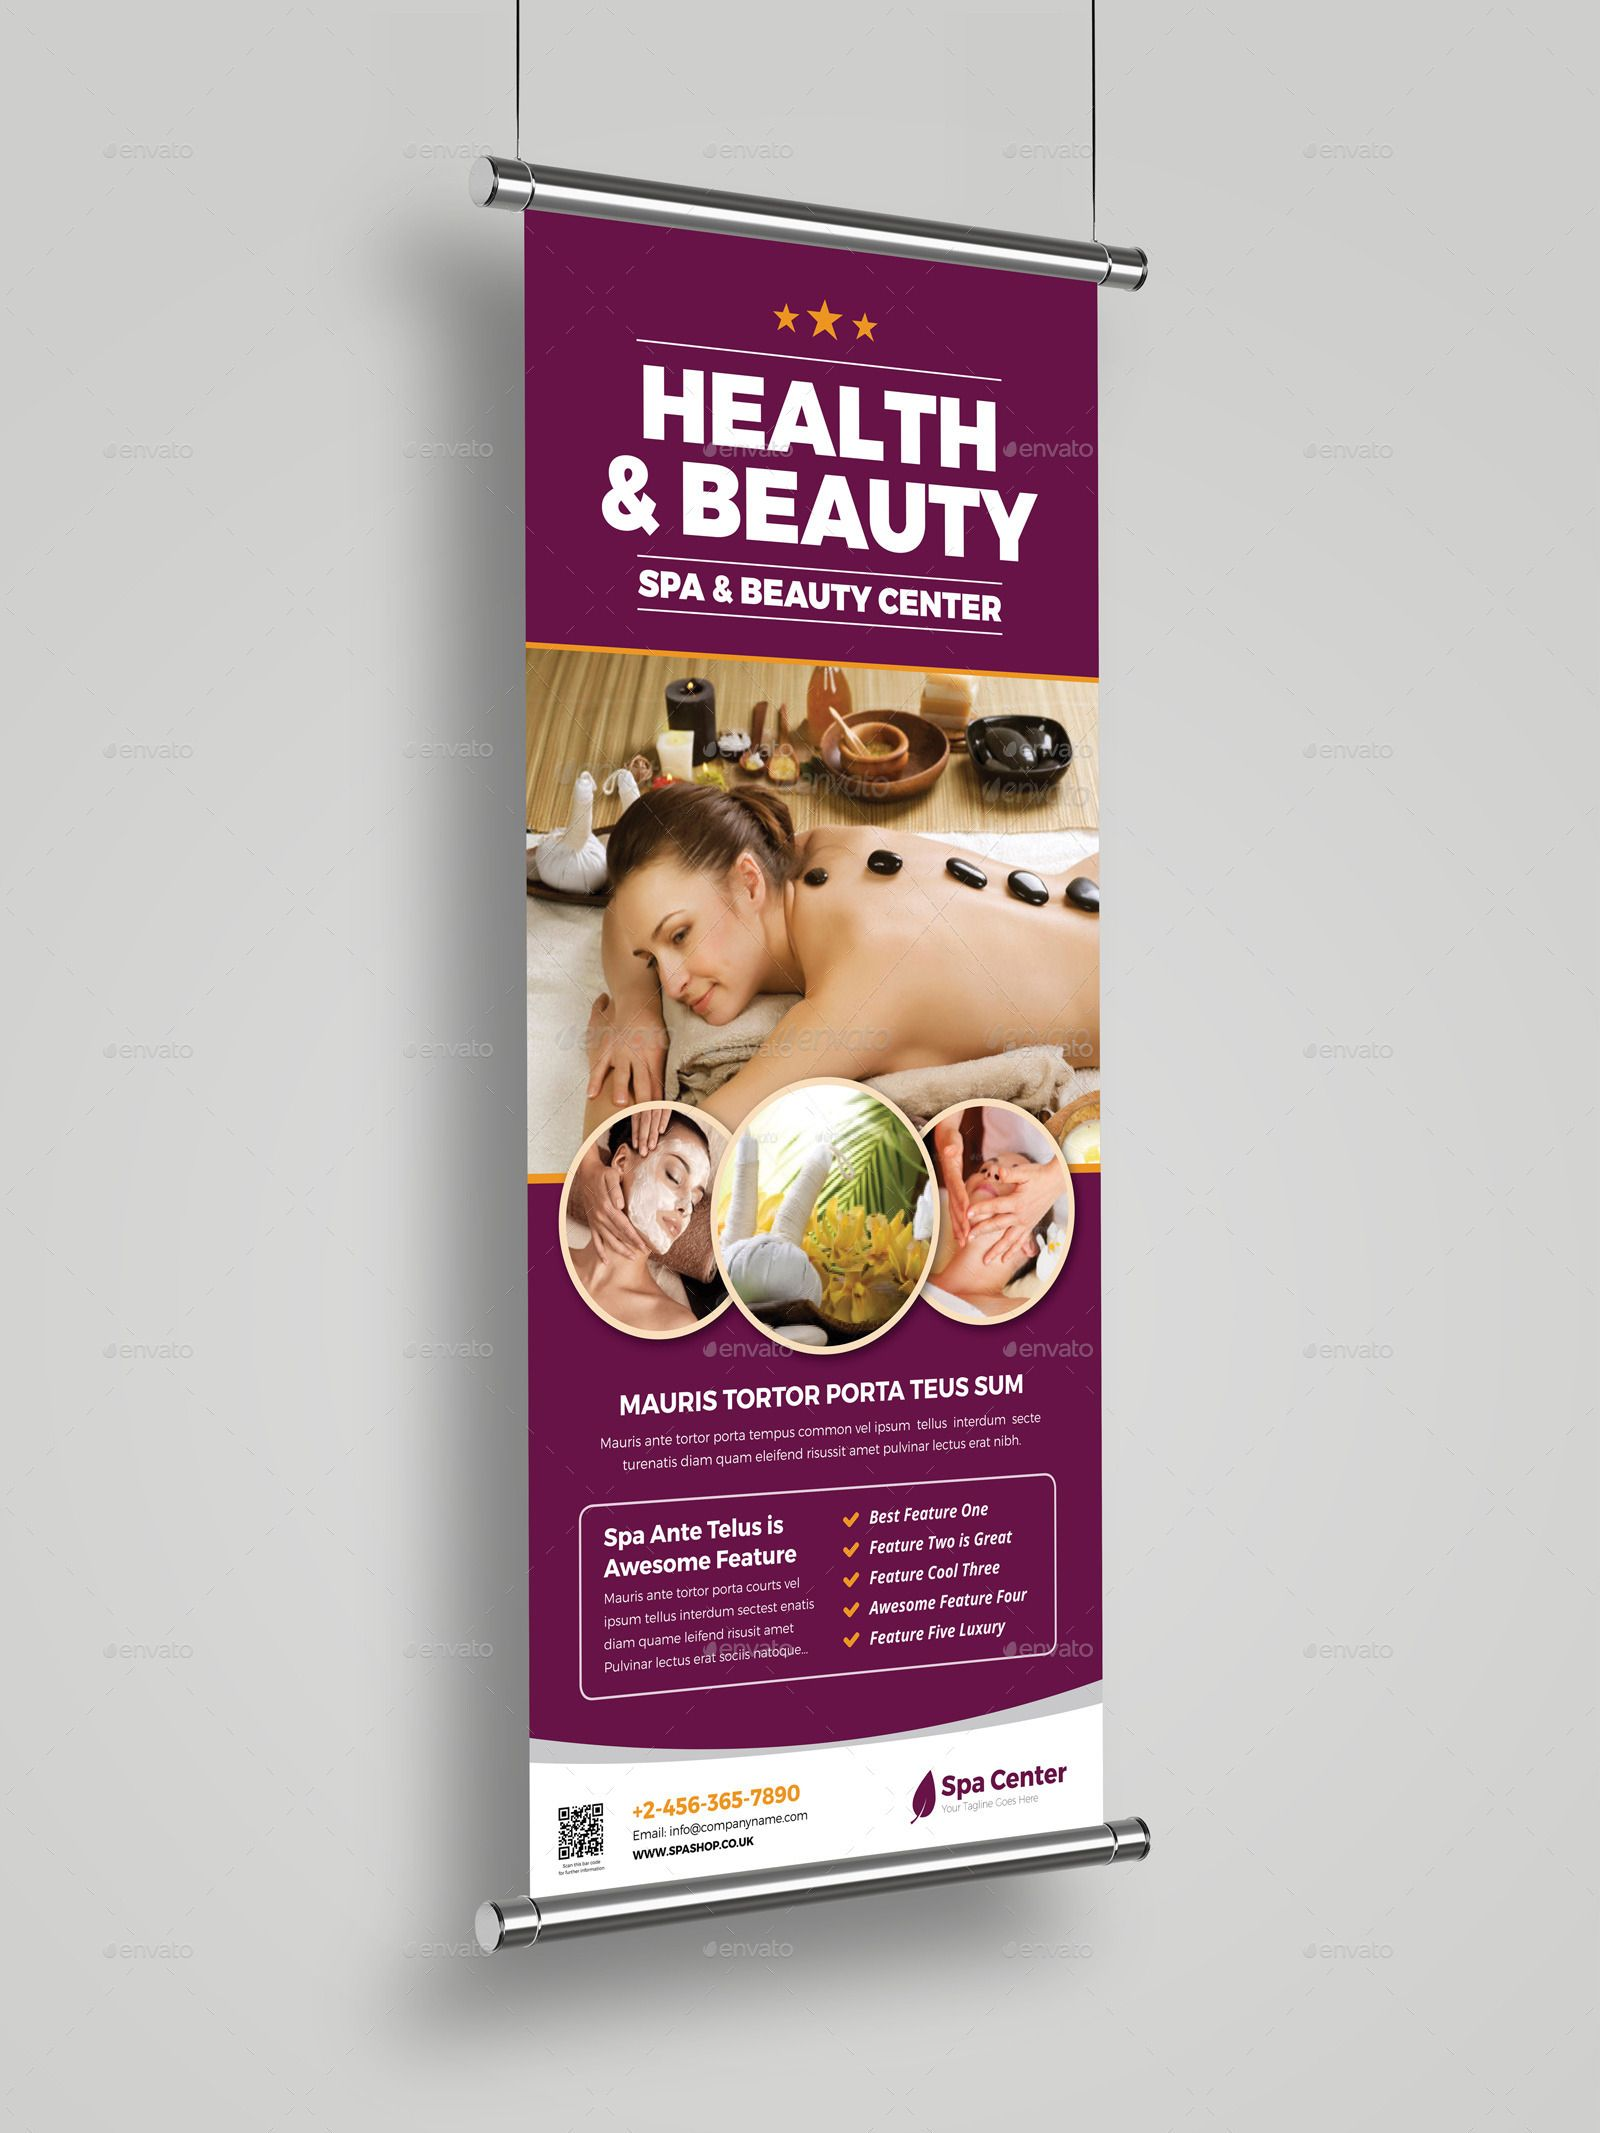 Spa Beauty Roll Up Banner Signage Indesign Roll Beauty Spa Indesign Roller Banner Design Standee Design Beauty Spa